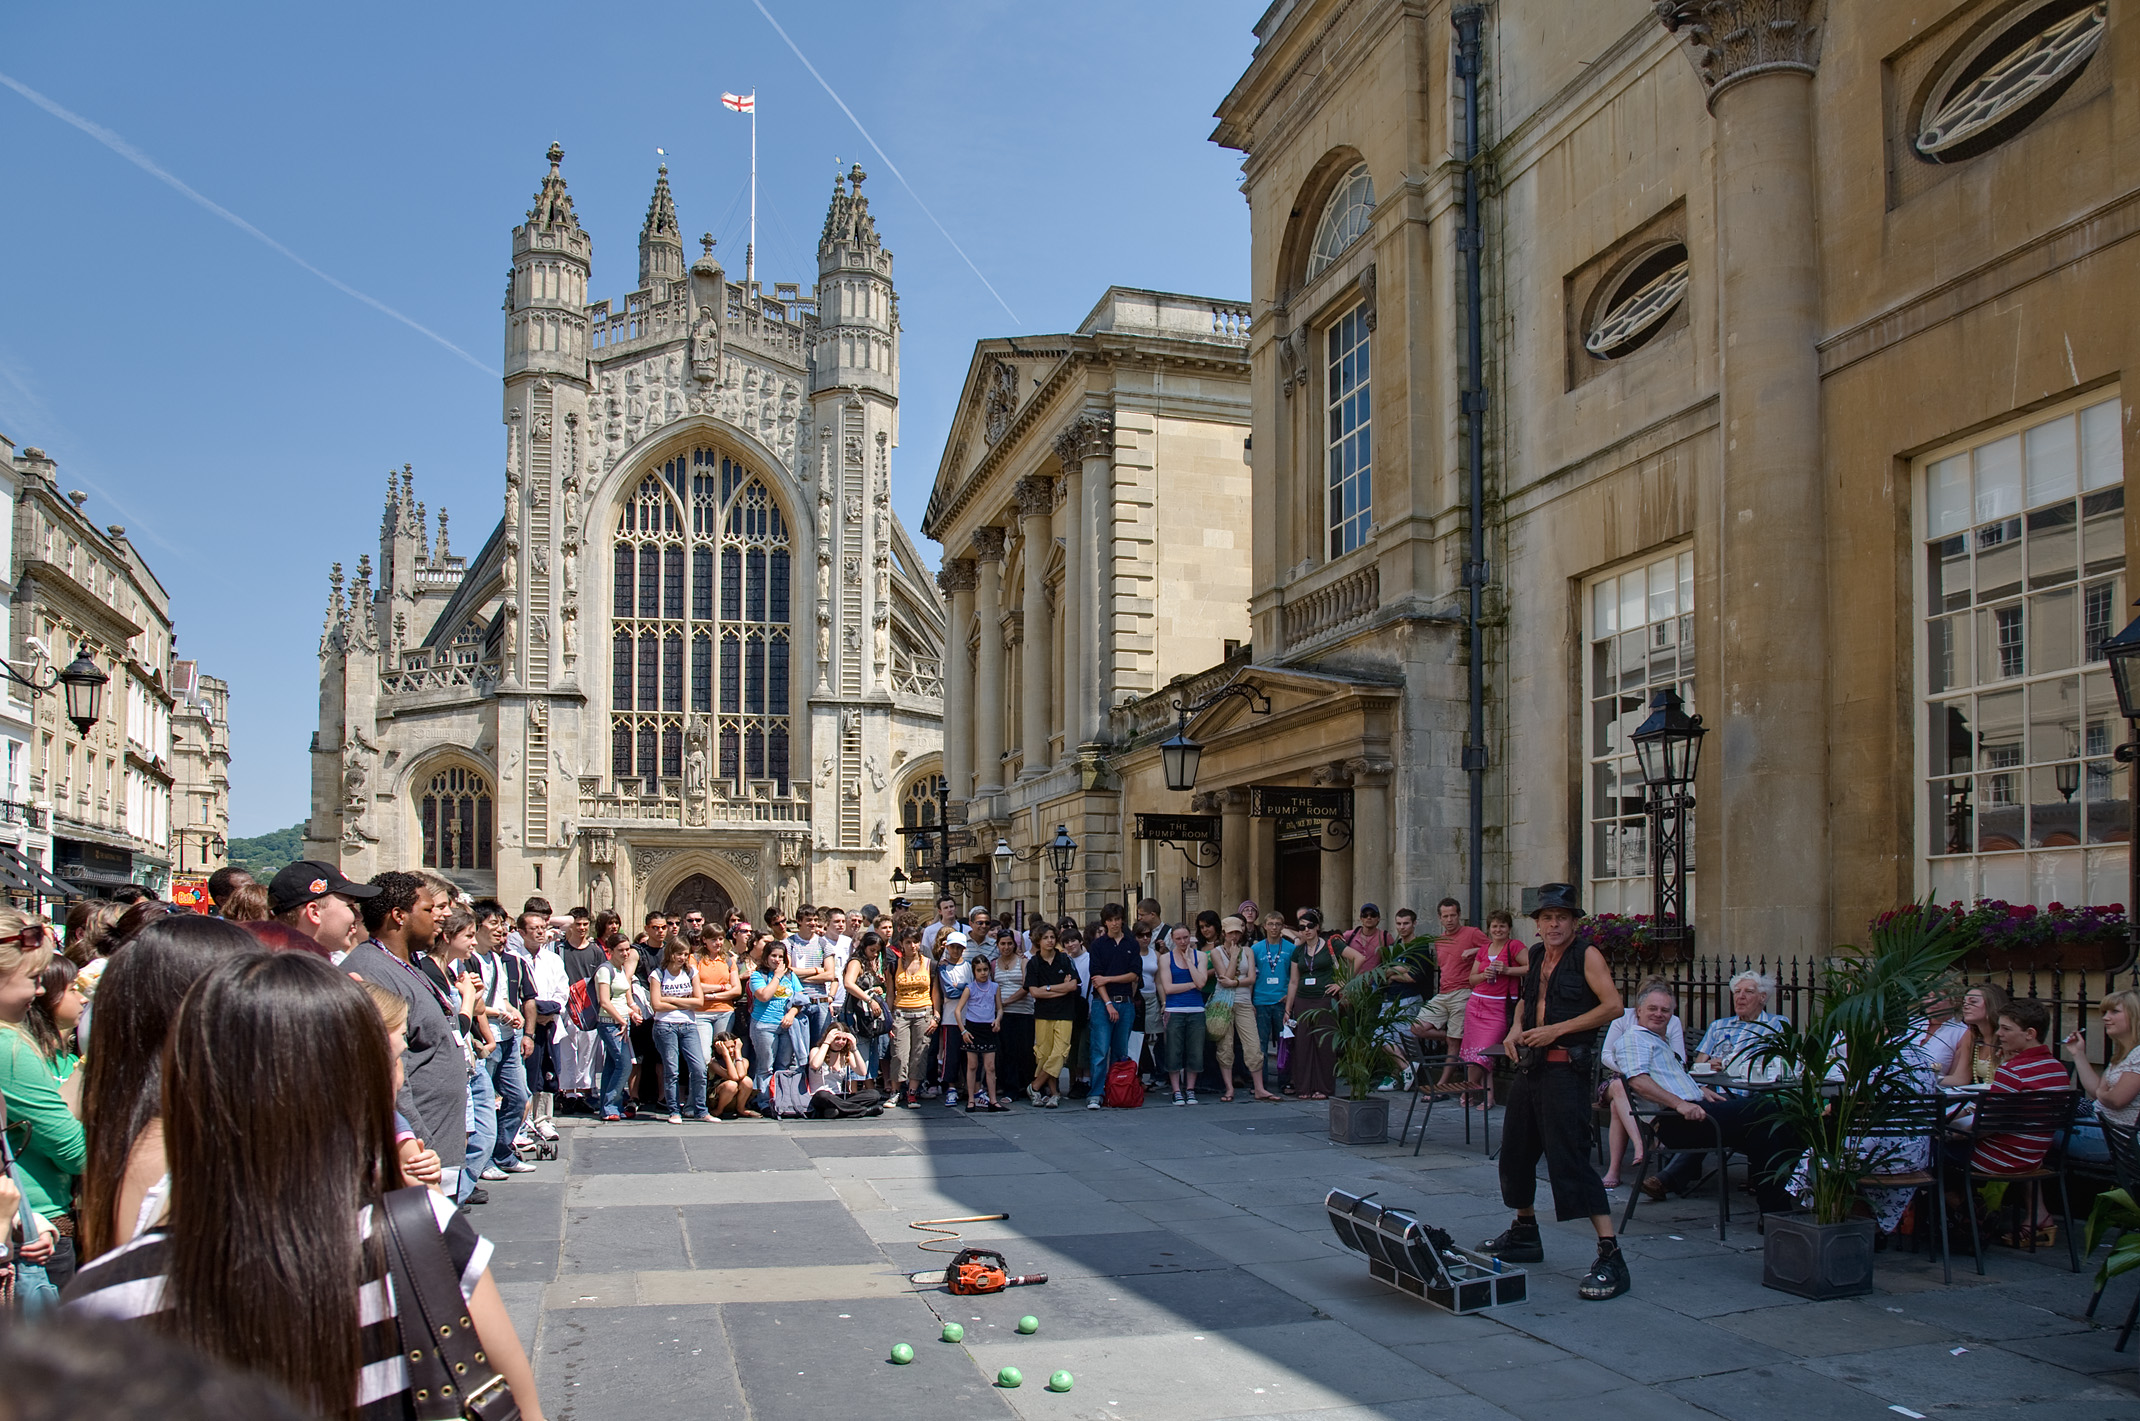 http://commons.wikipedia.org/wiki/File:Bath_Abbey_and_Entertainer_-_July_2006.jpg